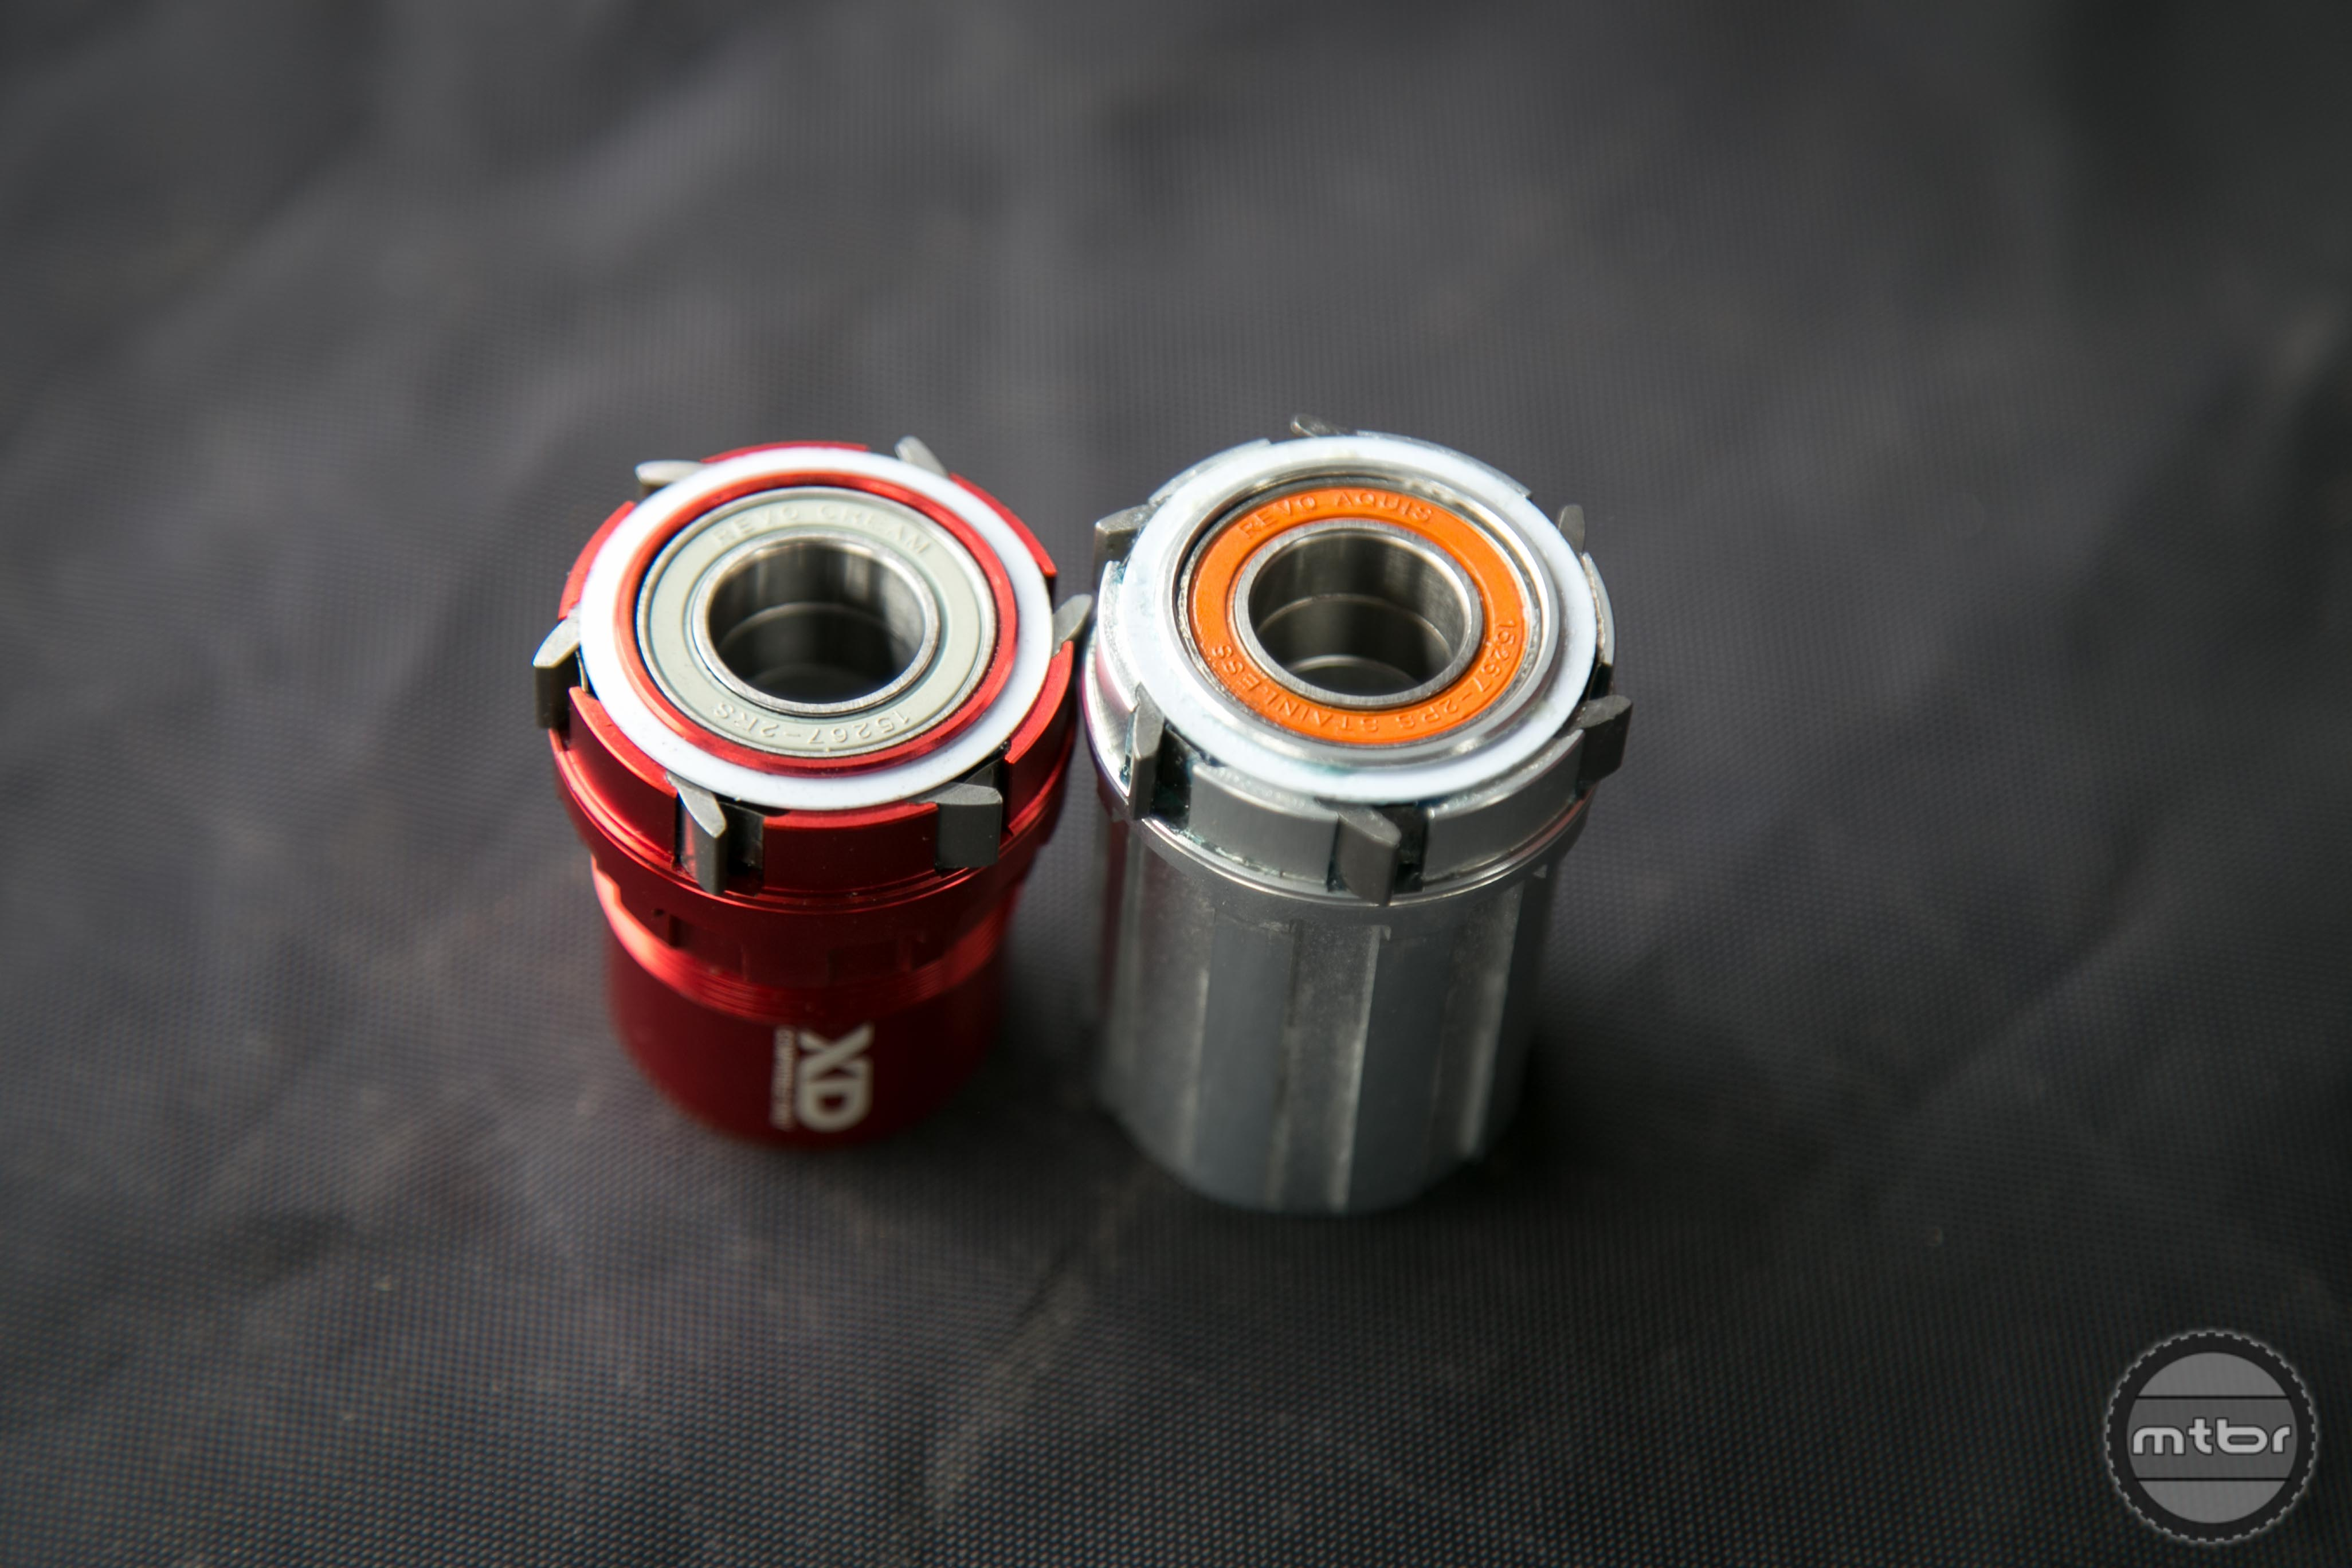 Stans new speed sync and dura sync freehub body upgrade-1